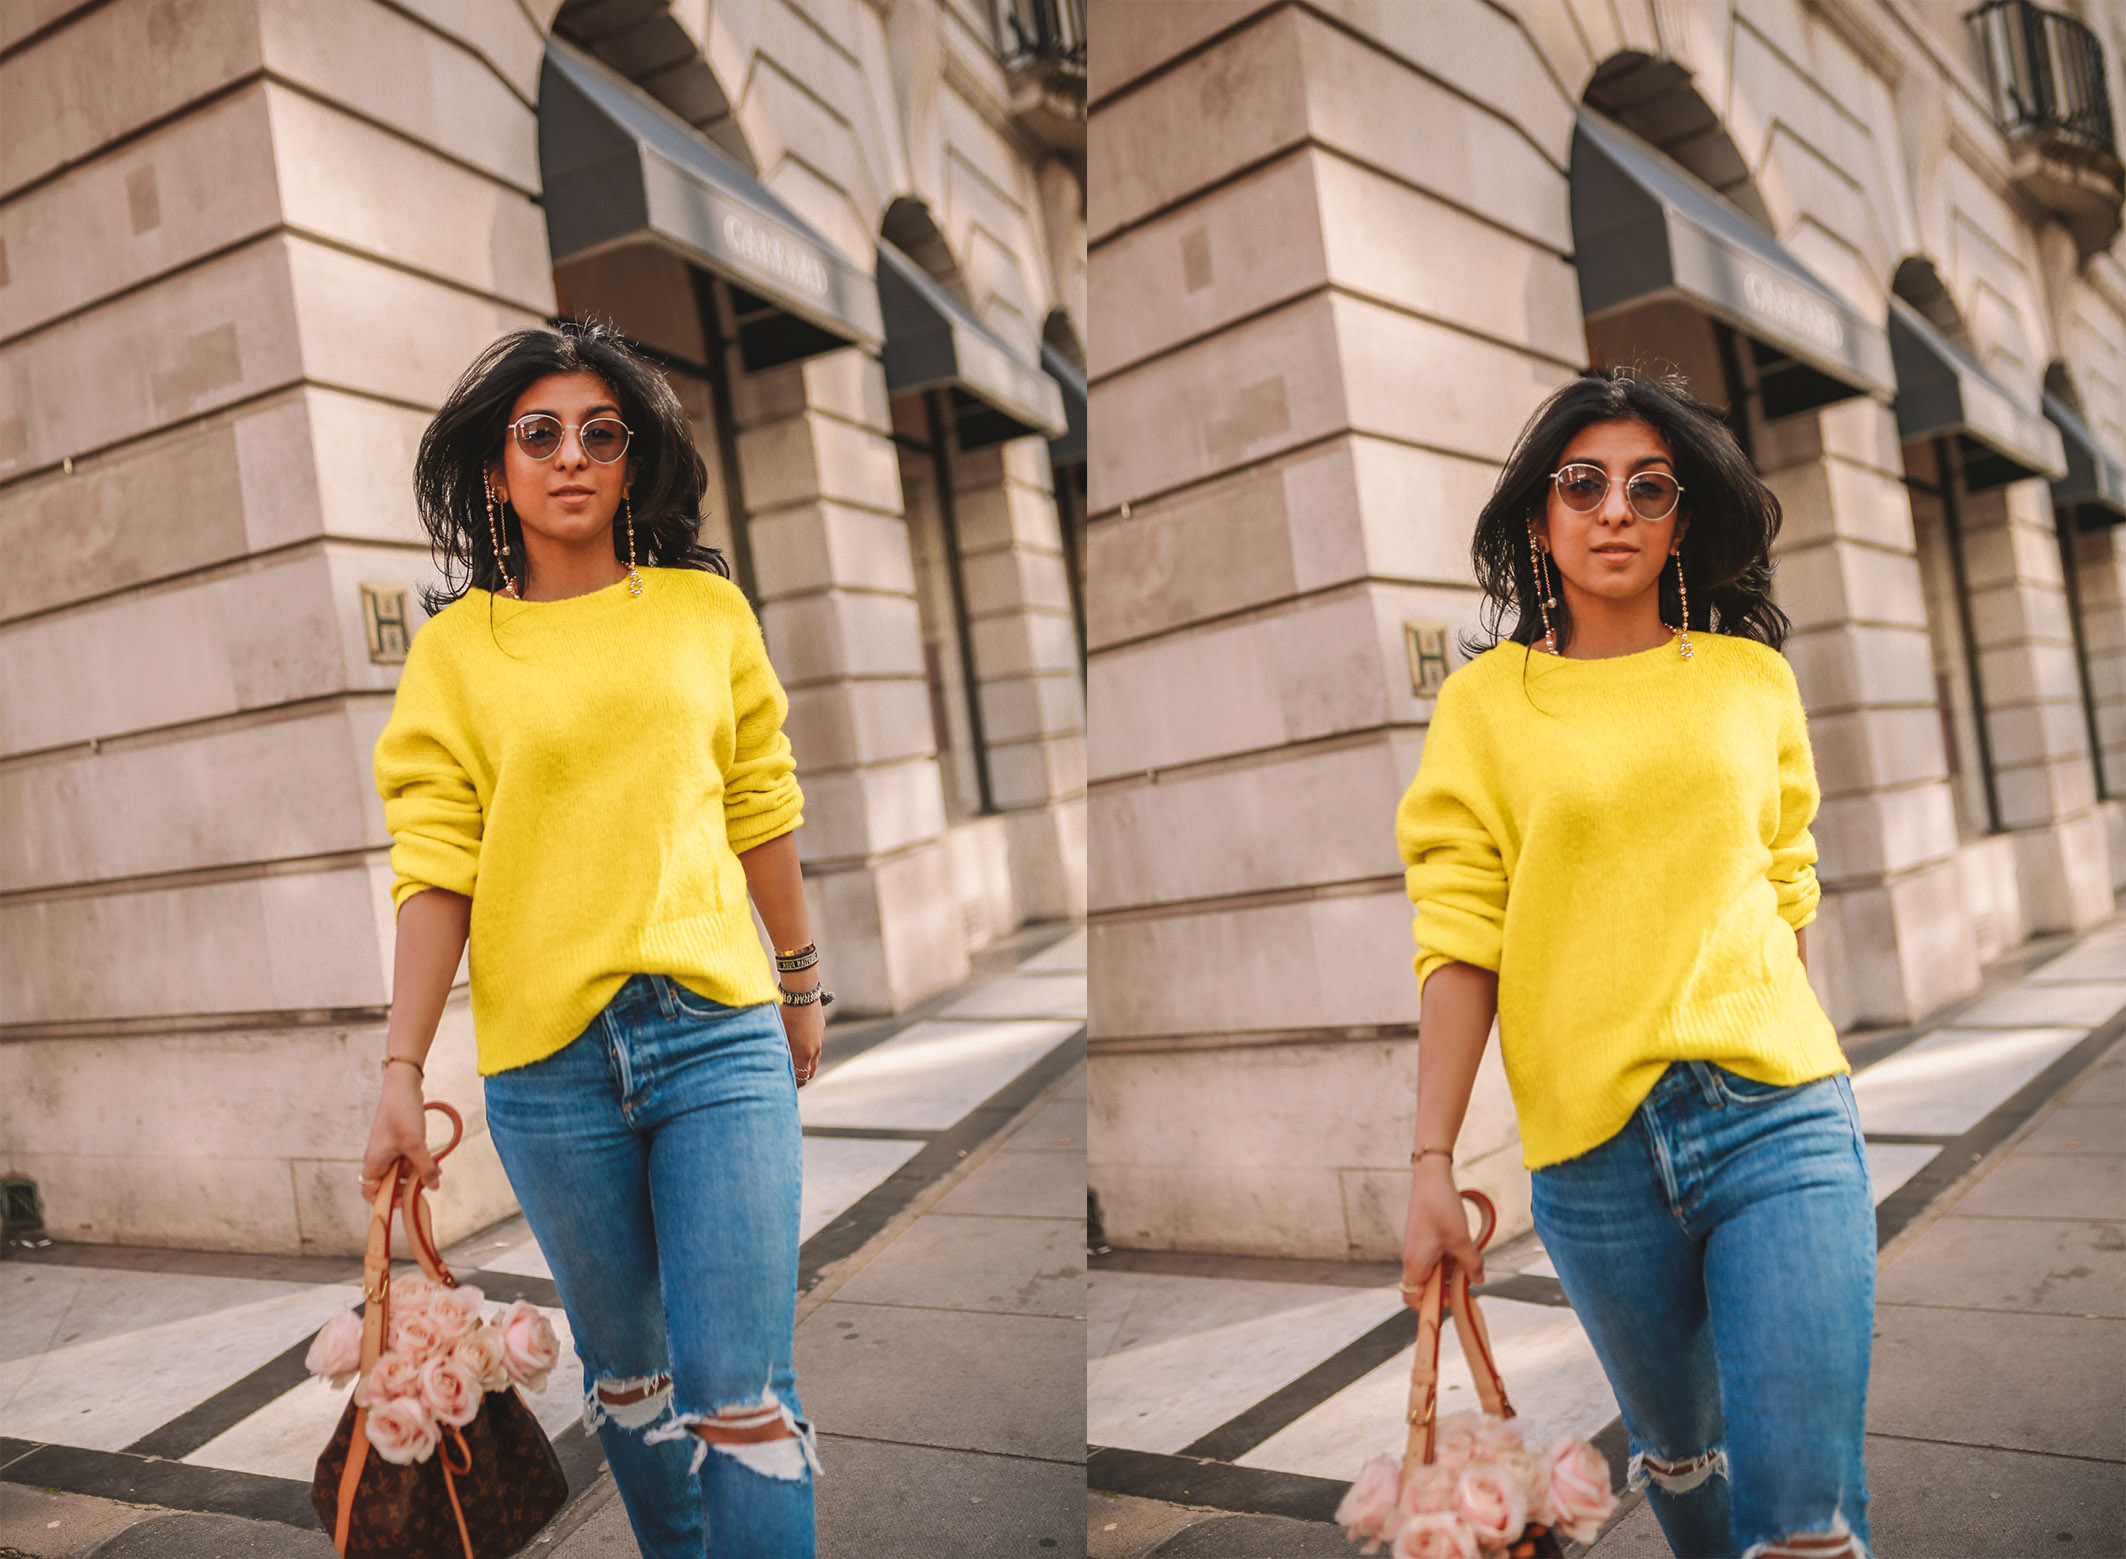 How To Wear A Neon Outfit Look Chic The Silk Sneaker